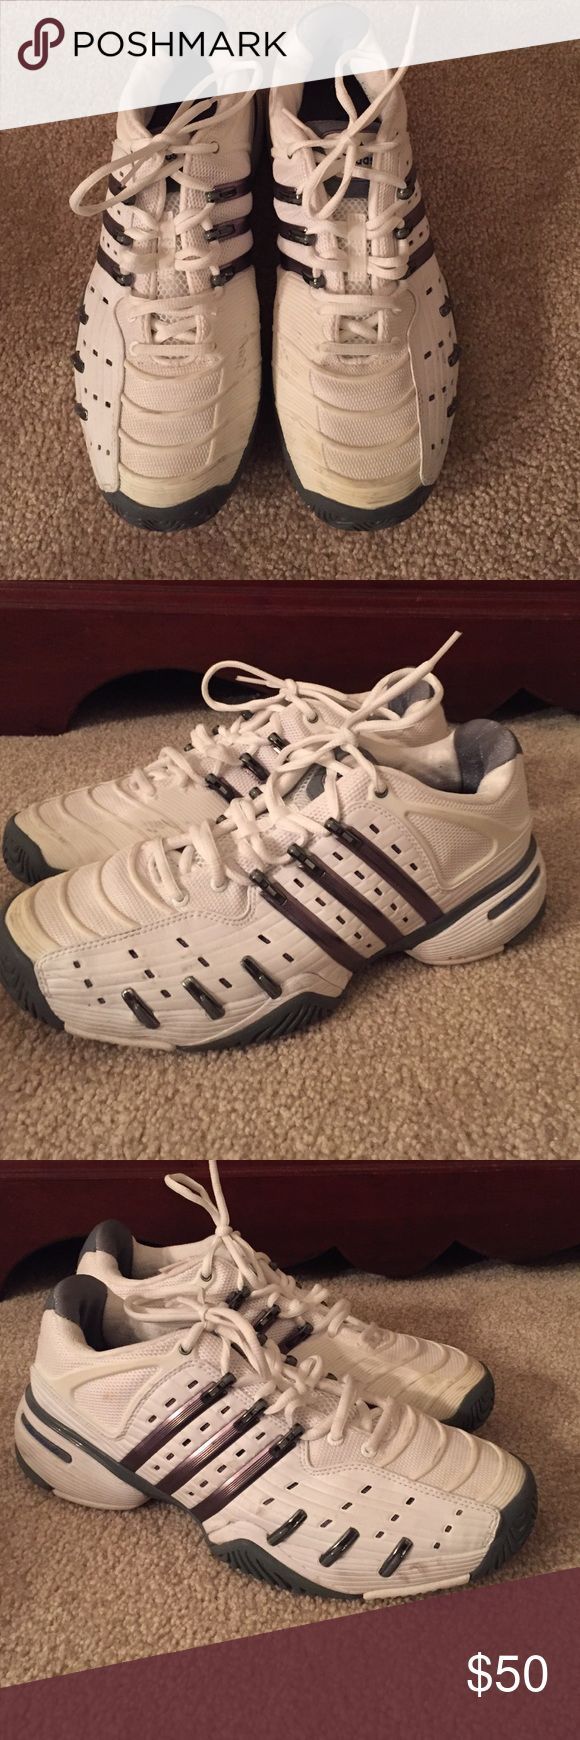 adidas Barricade 5 Tennis Sneakers lightly worn tennis sneakers - great for all types of courts - super comfortable - classic white and grey Adidas Shoes Athletic Shoes